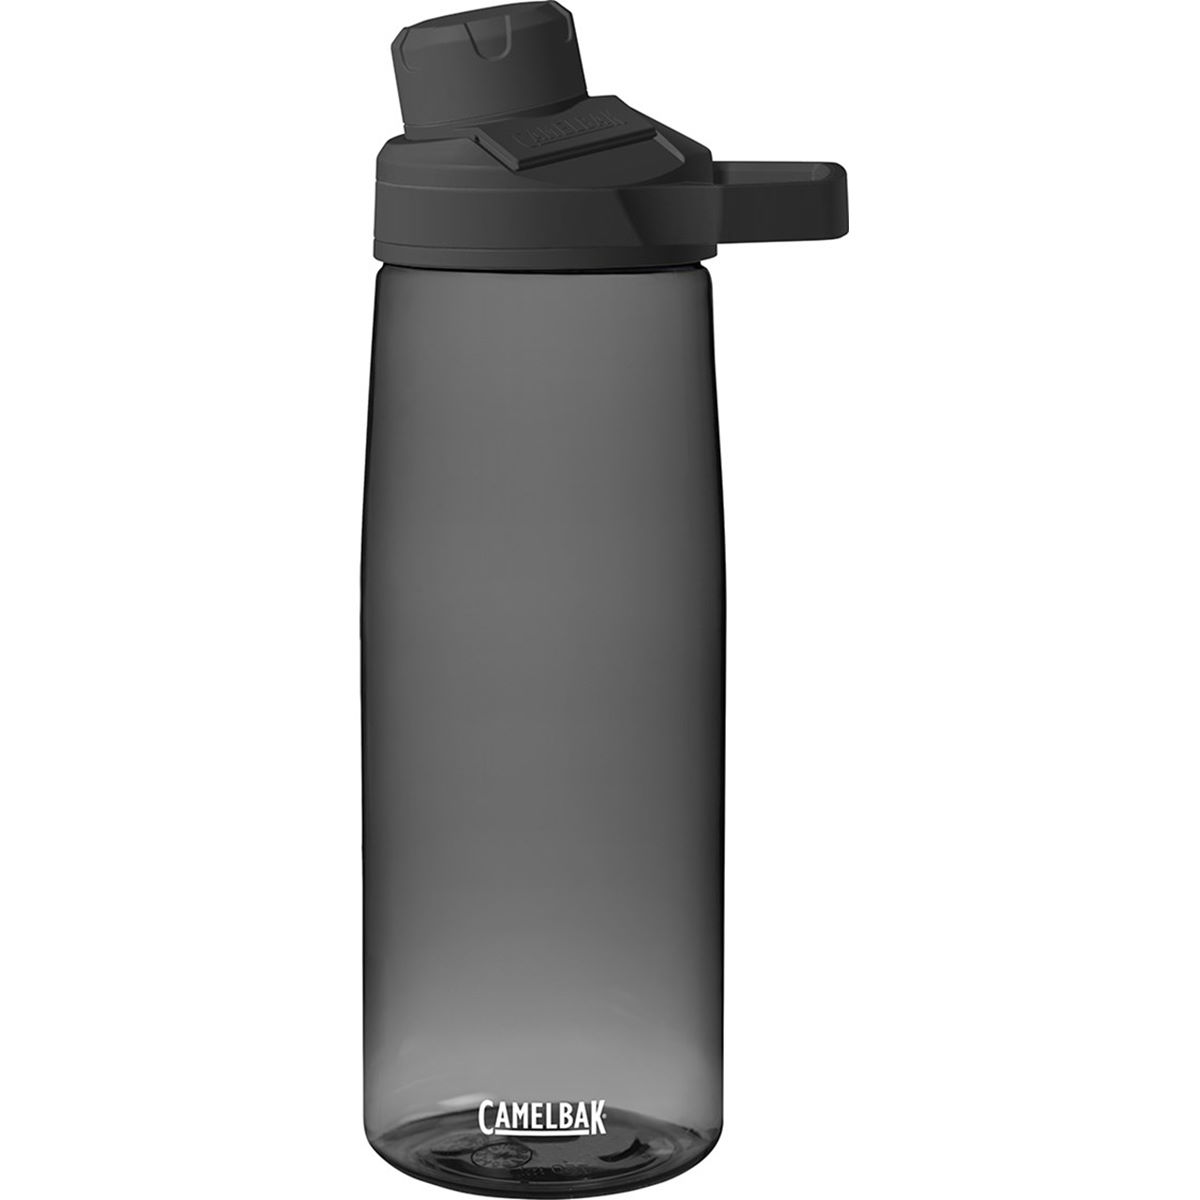 ComprarCamelbak Chute Mag 750ml Water Bottle - Bidones de agua